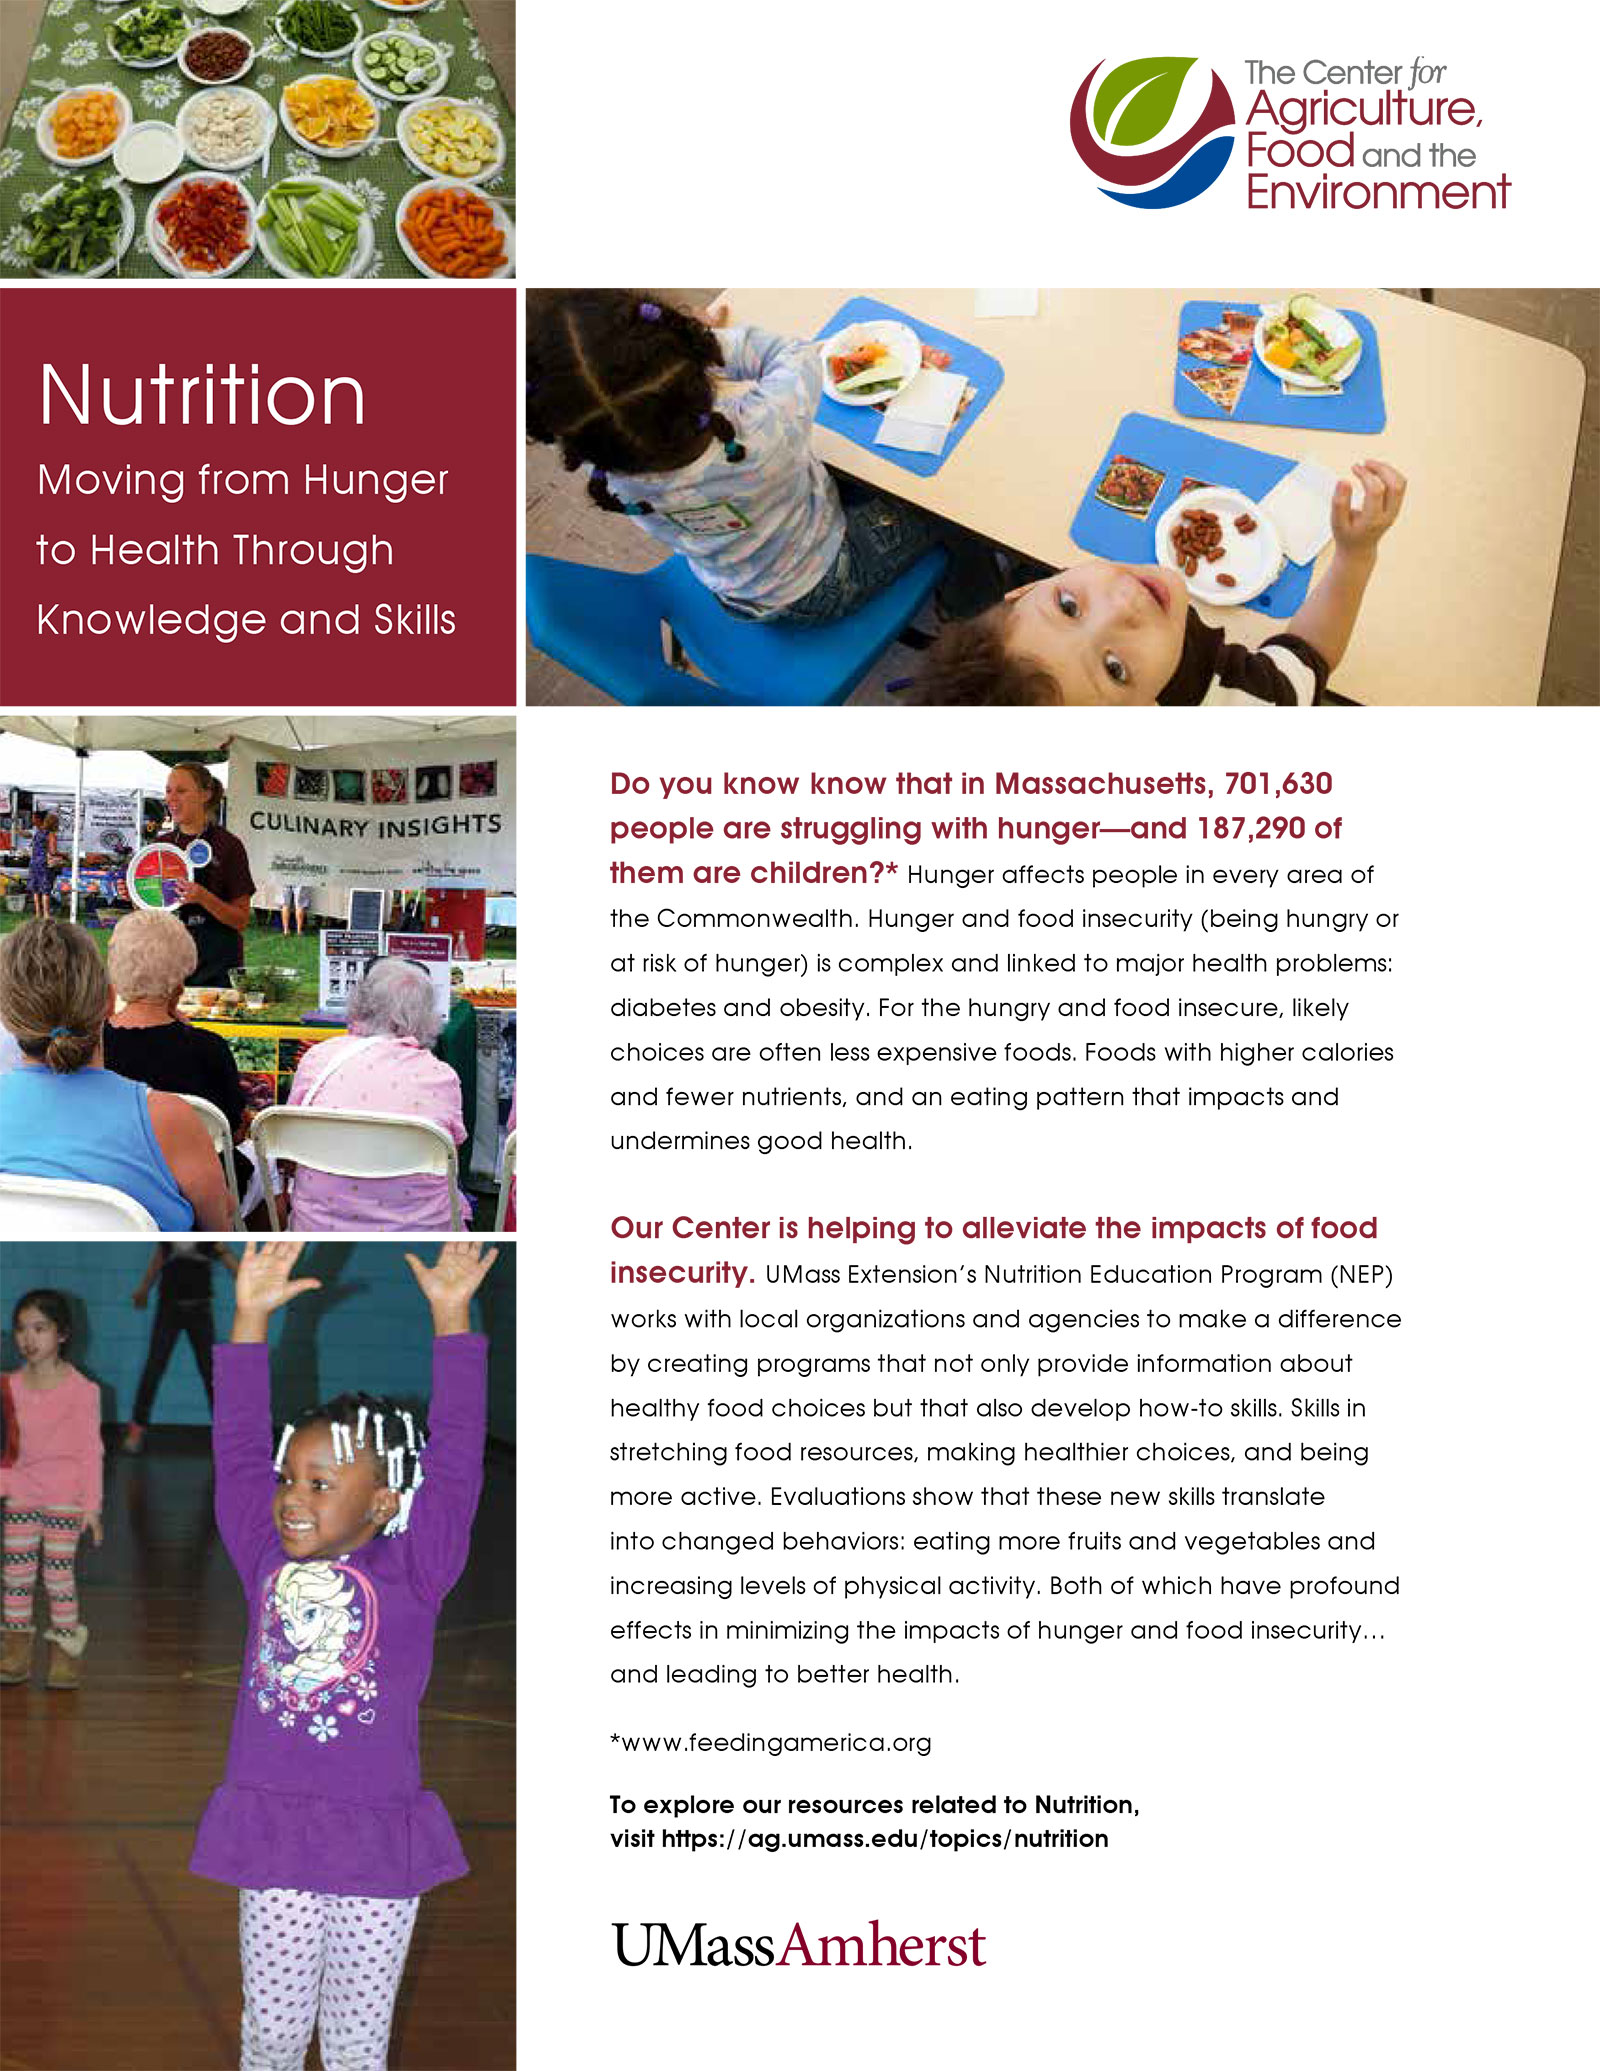 Nutrition insert for CAFE promotional material